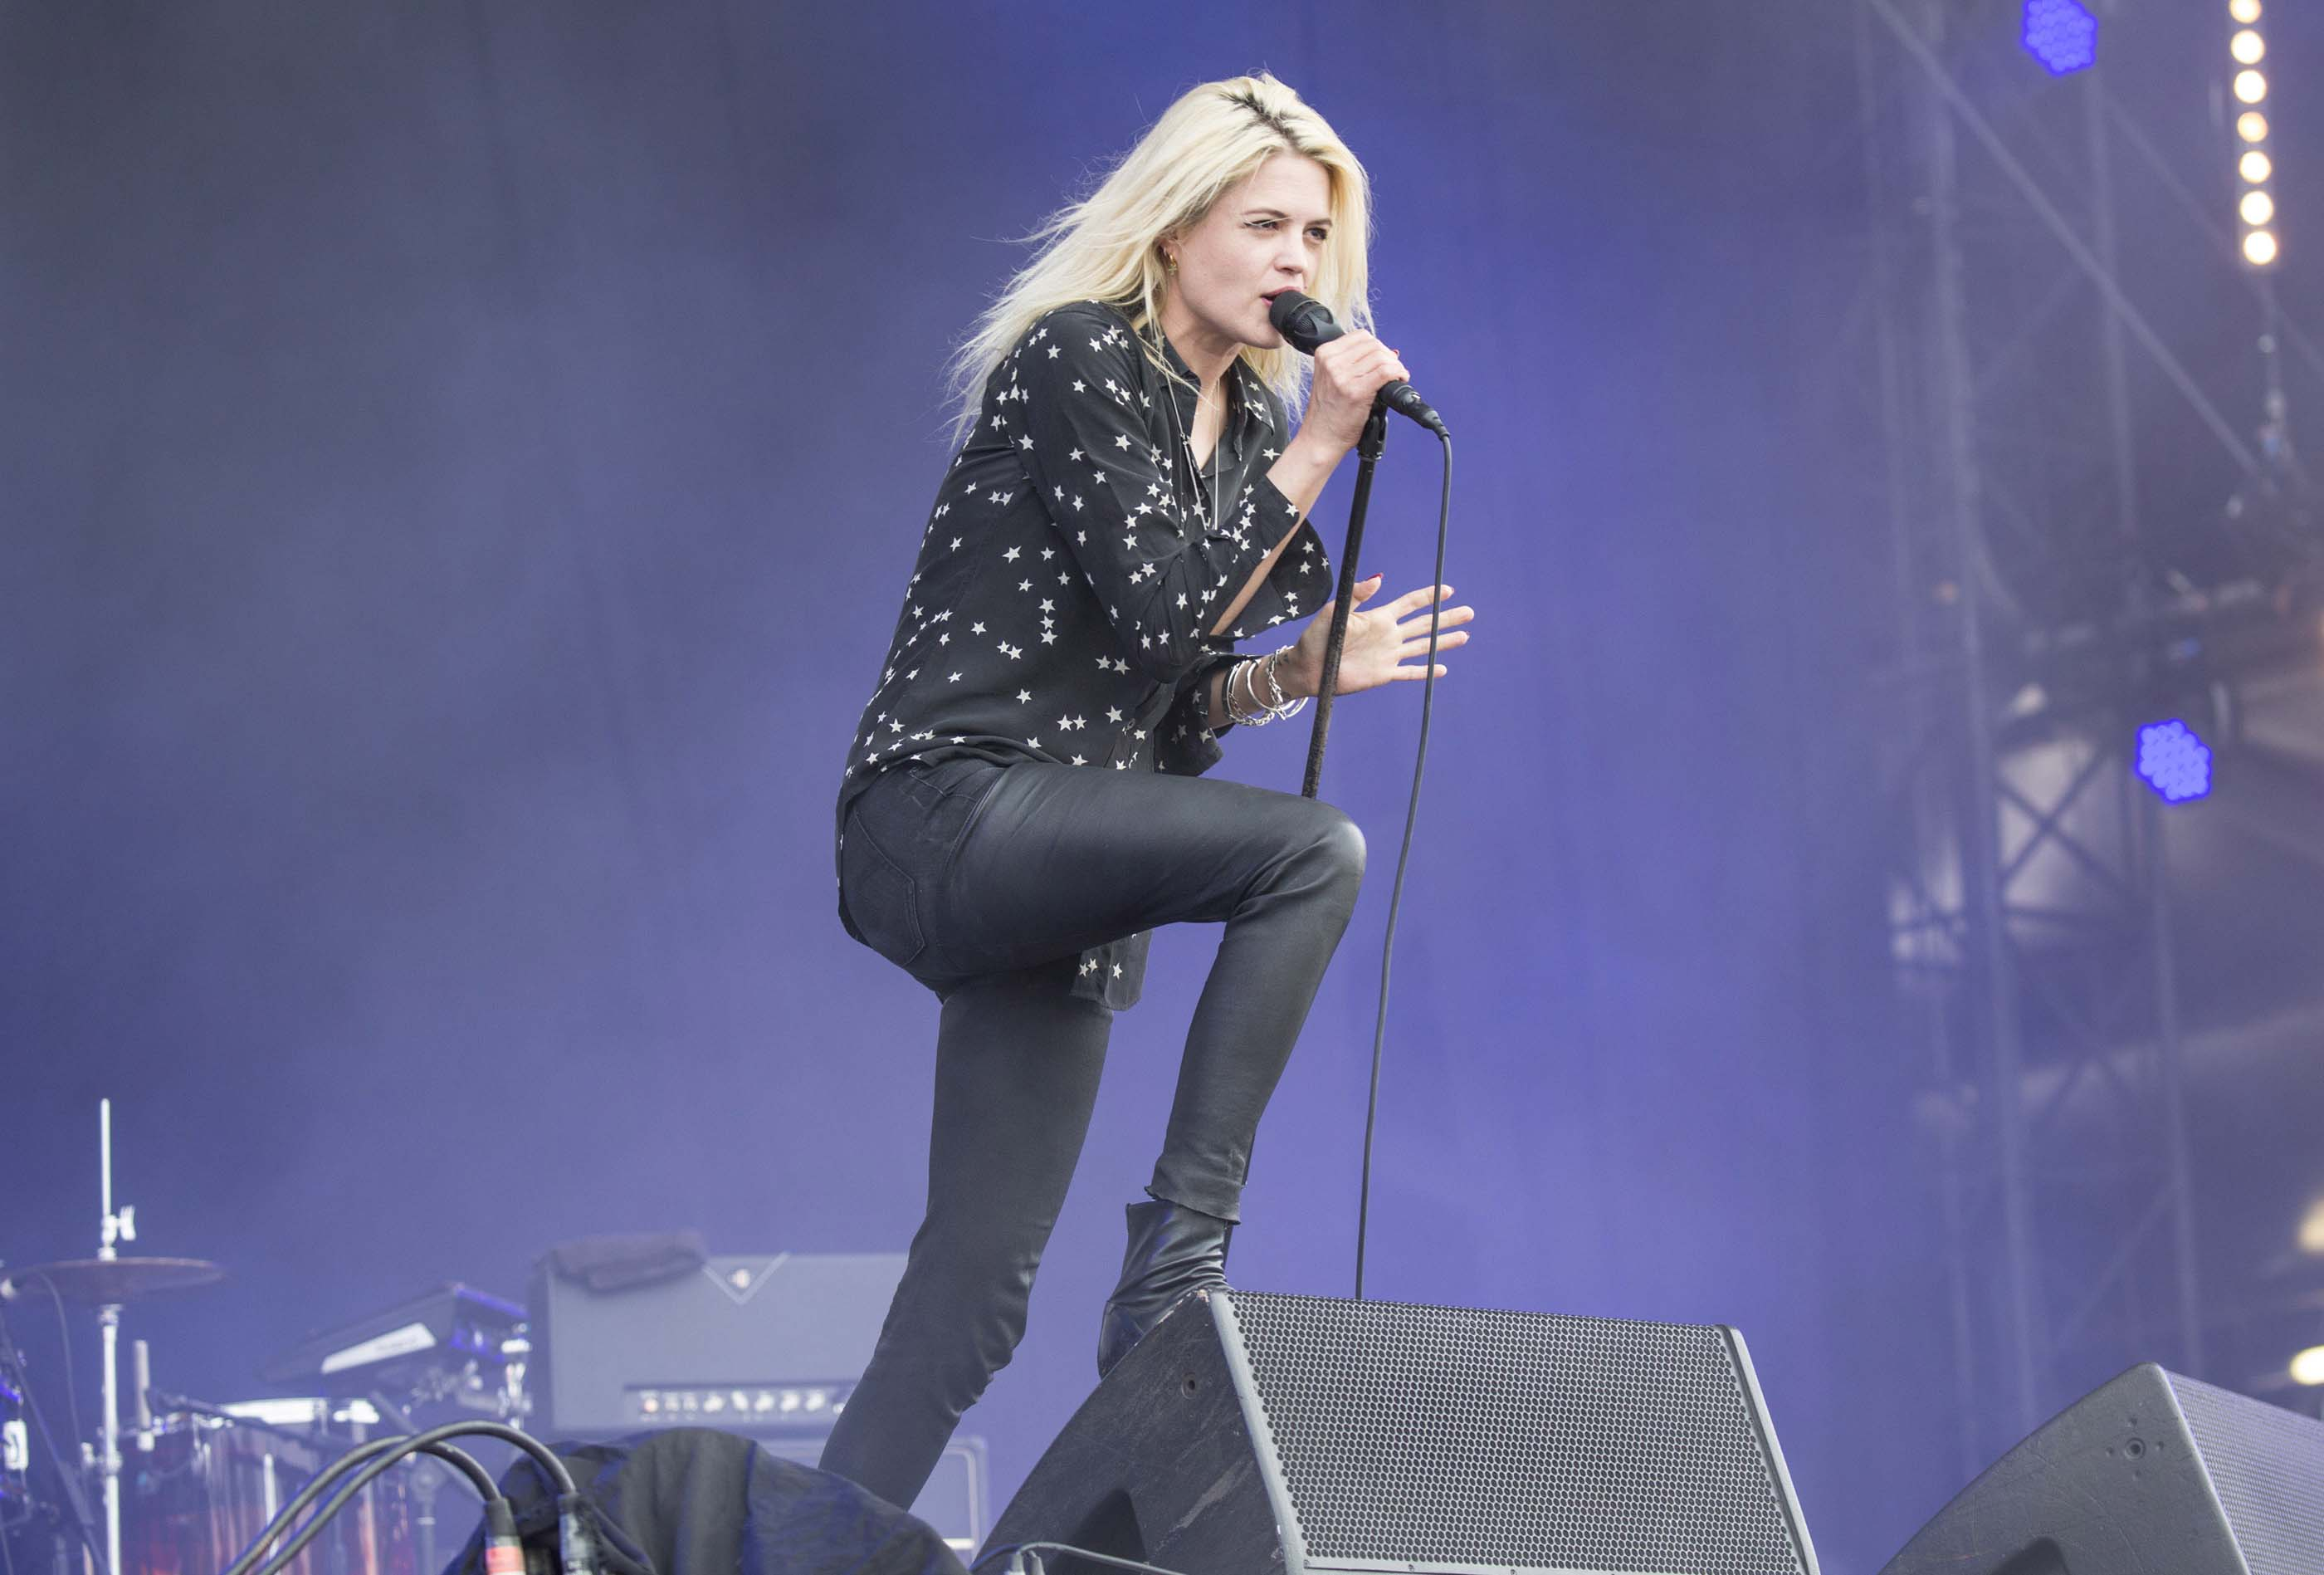 Alison Mosshart performs at the 2016 Park Live international music festival